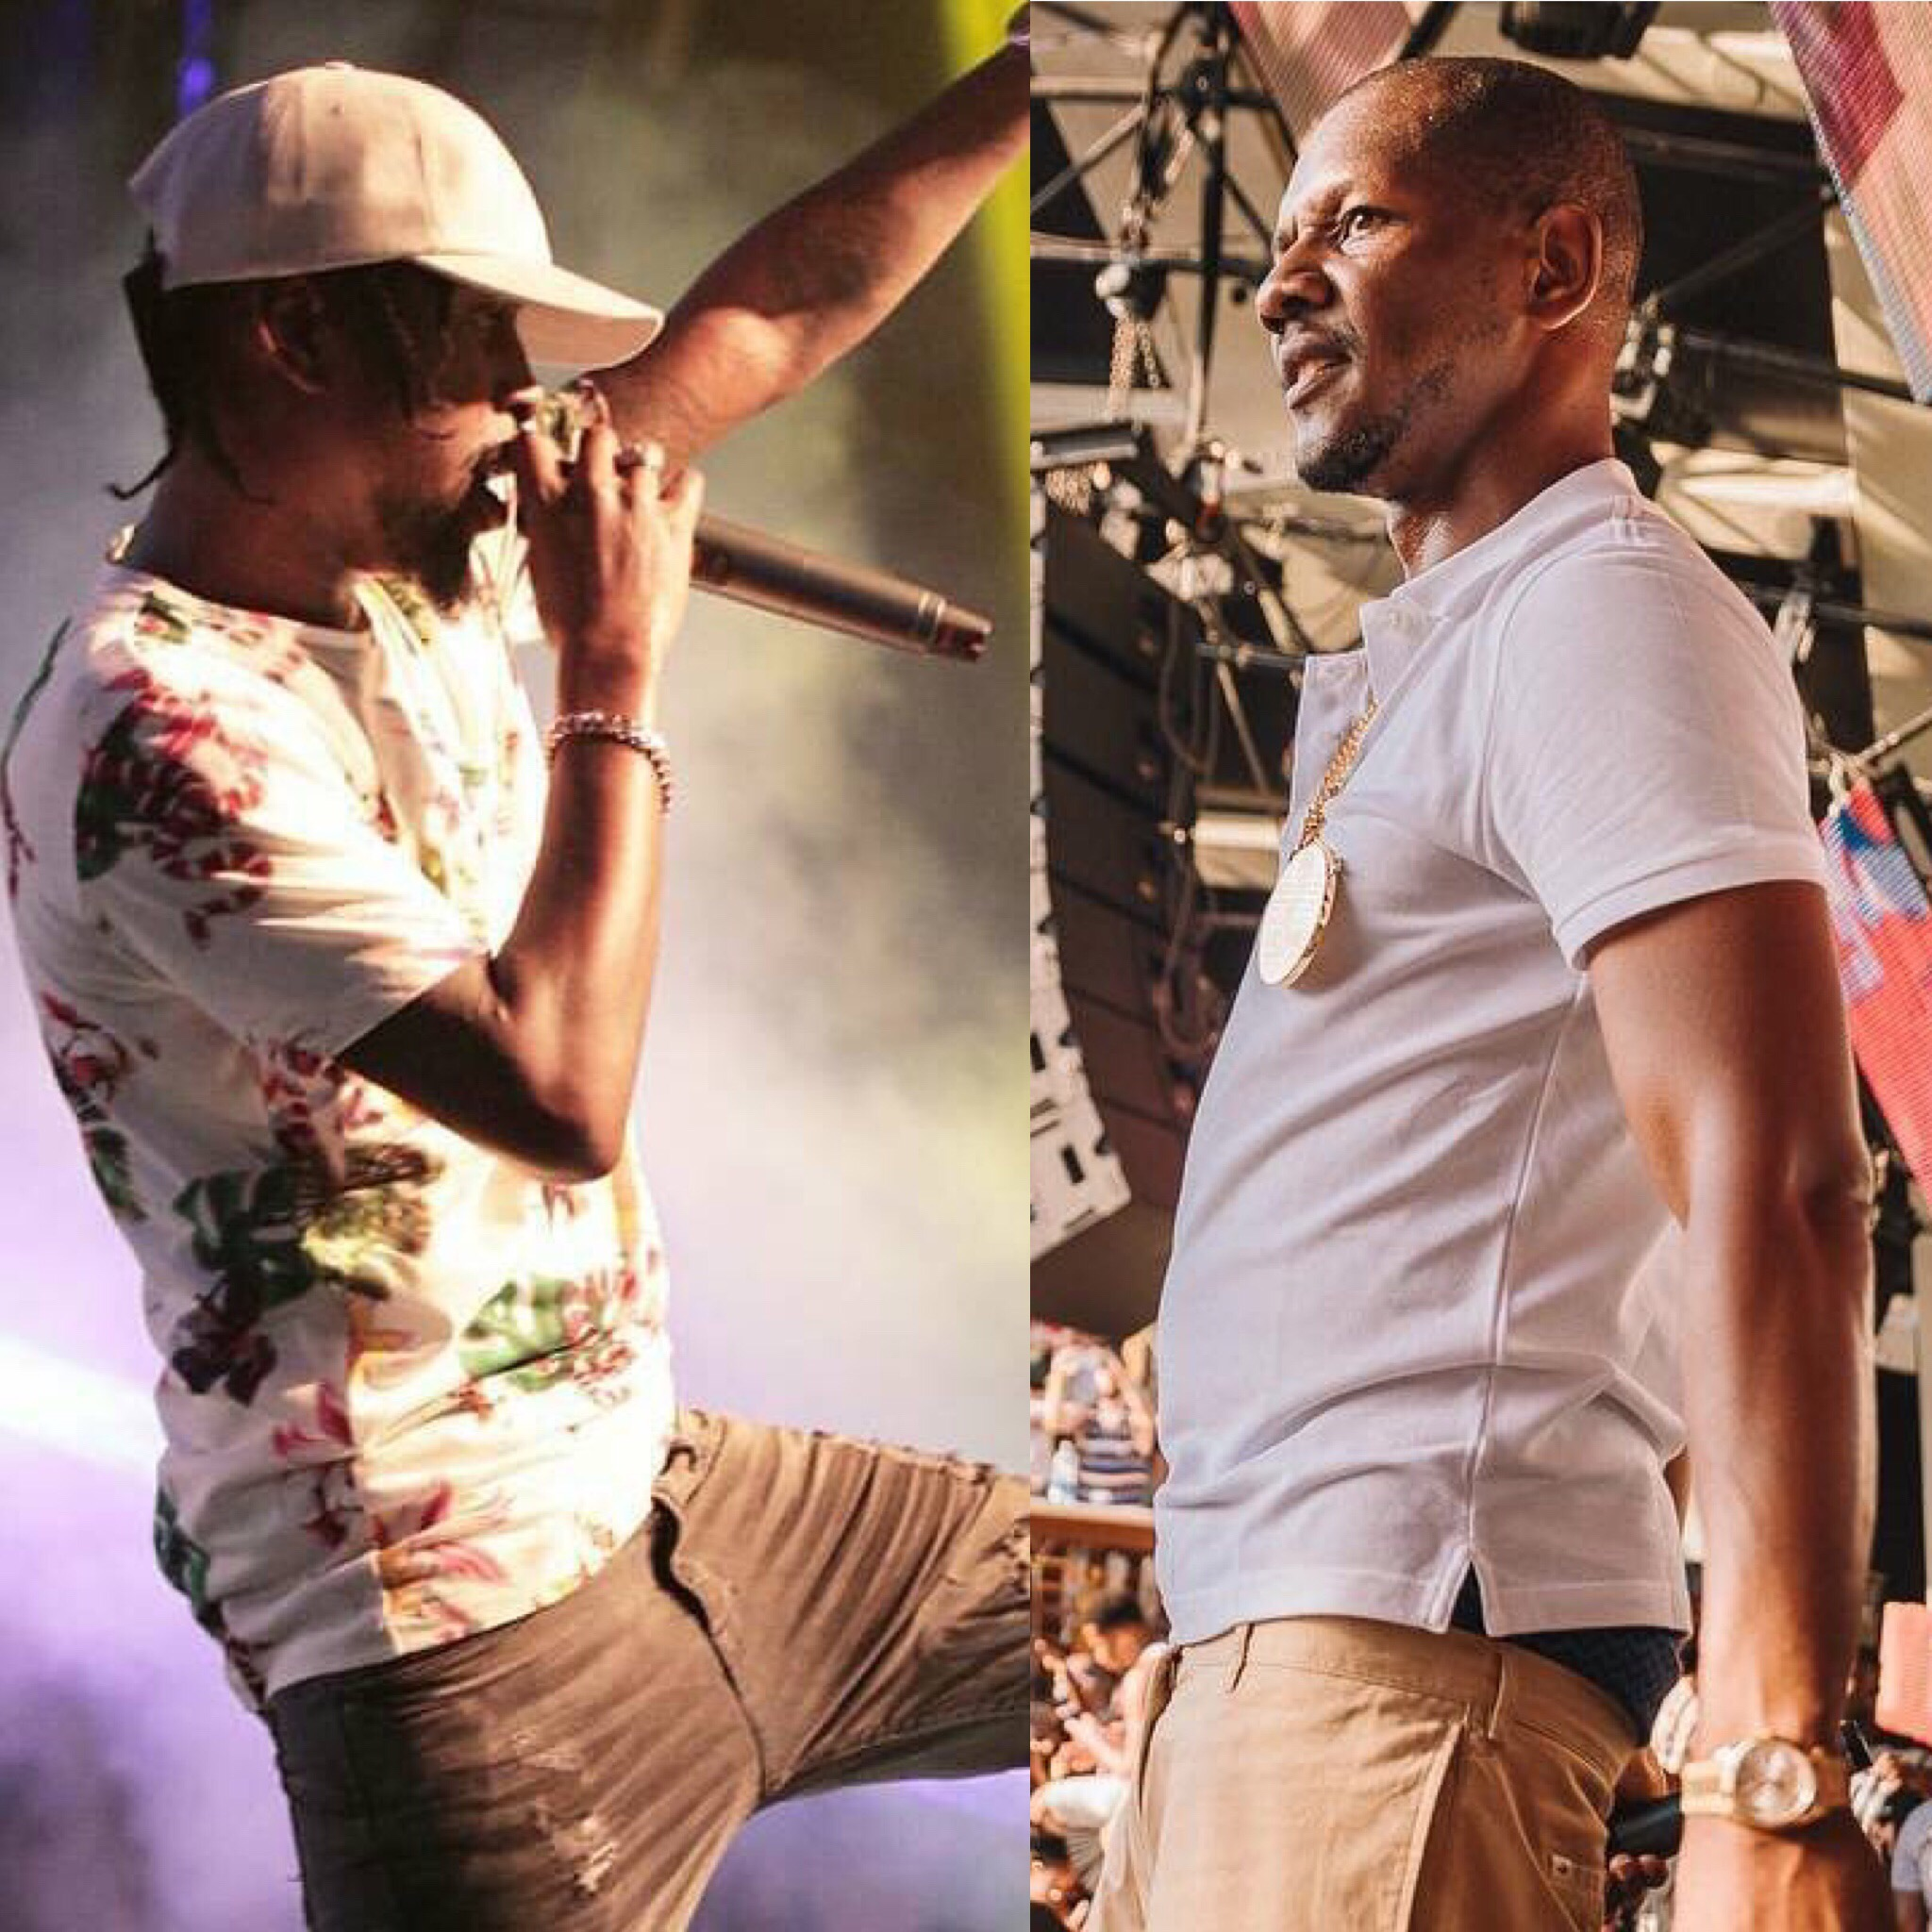 Giggs Joins Forces With Popcaan For 'Wamp 2 Dem' Mixtape